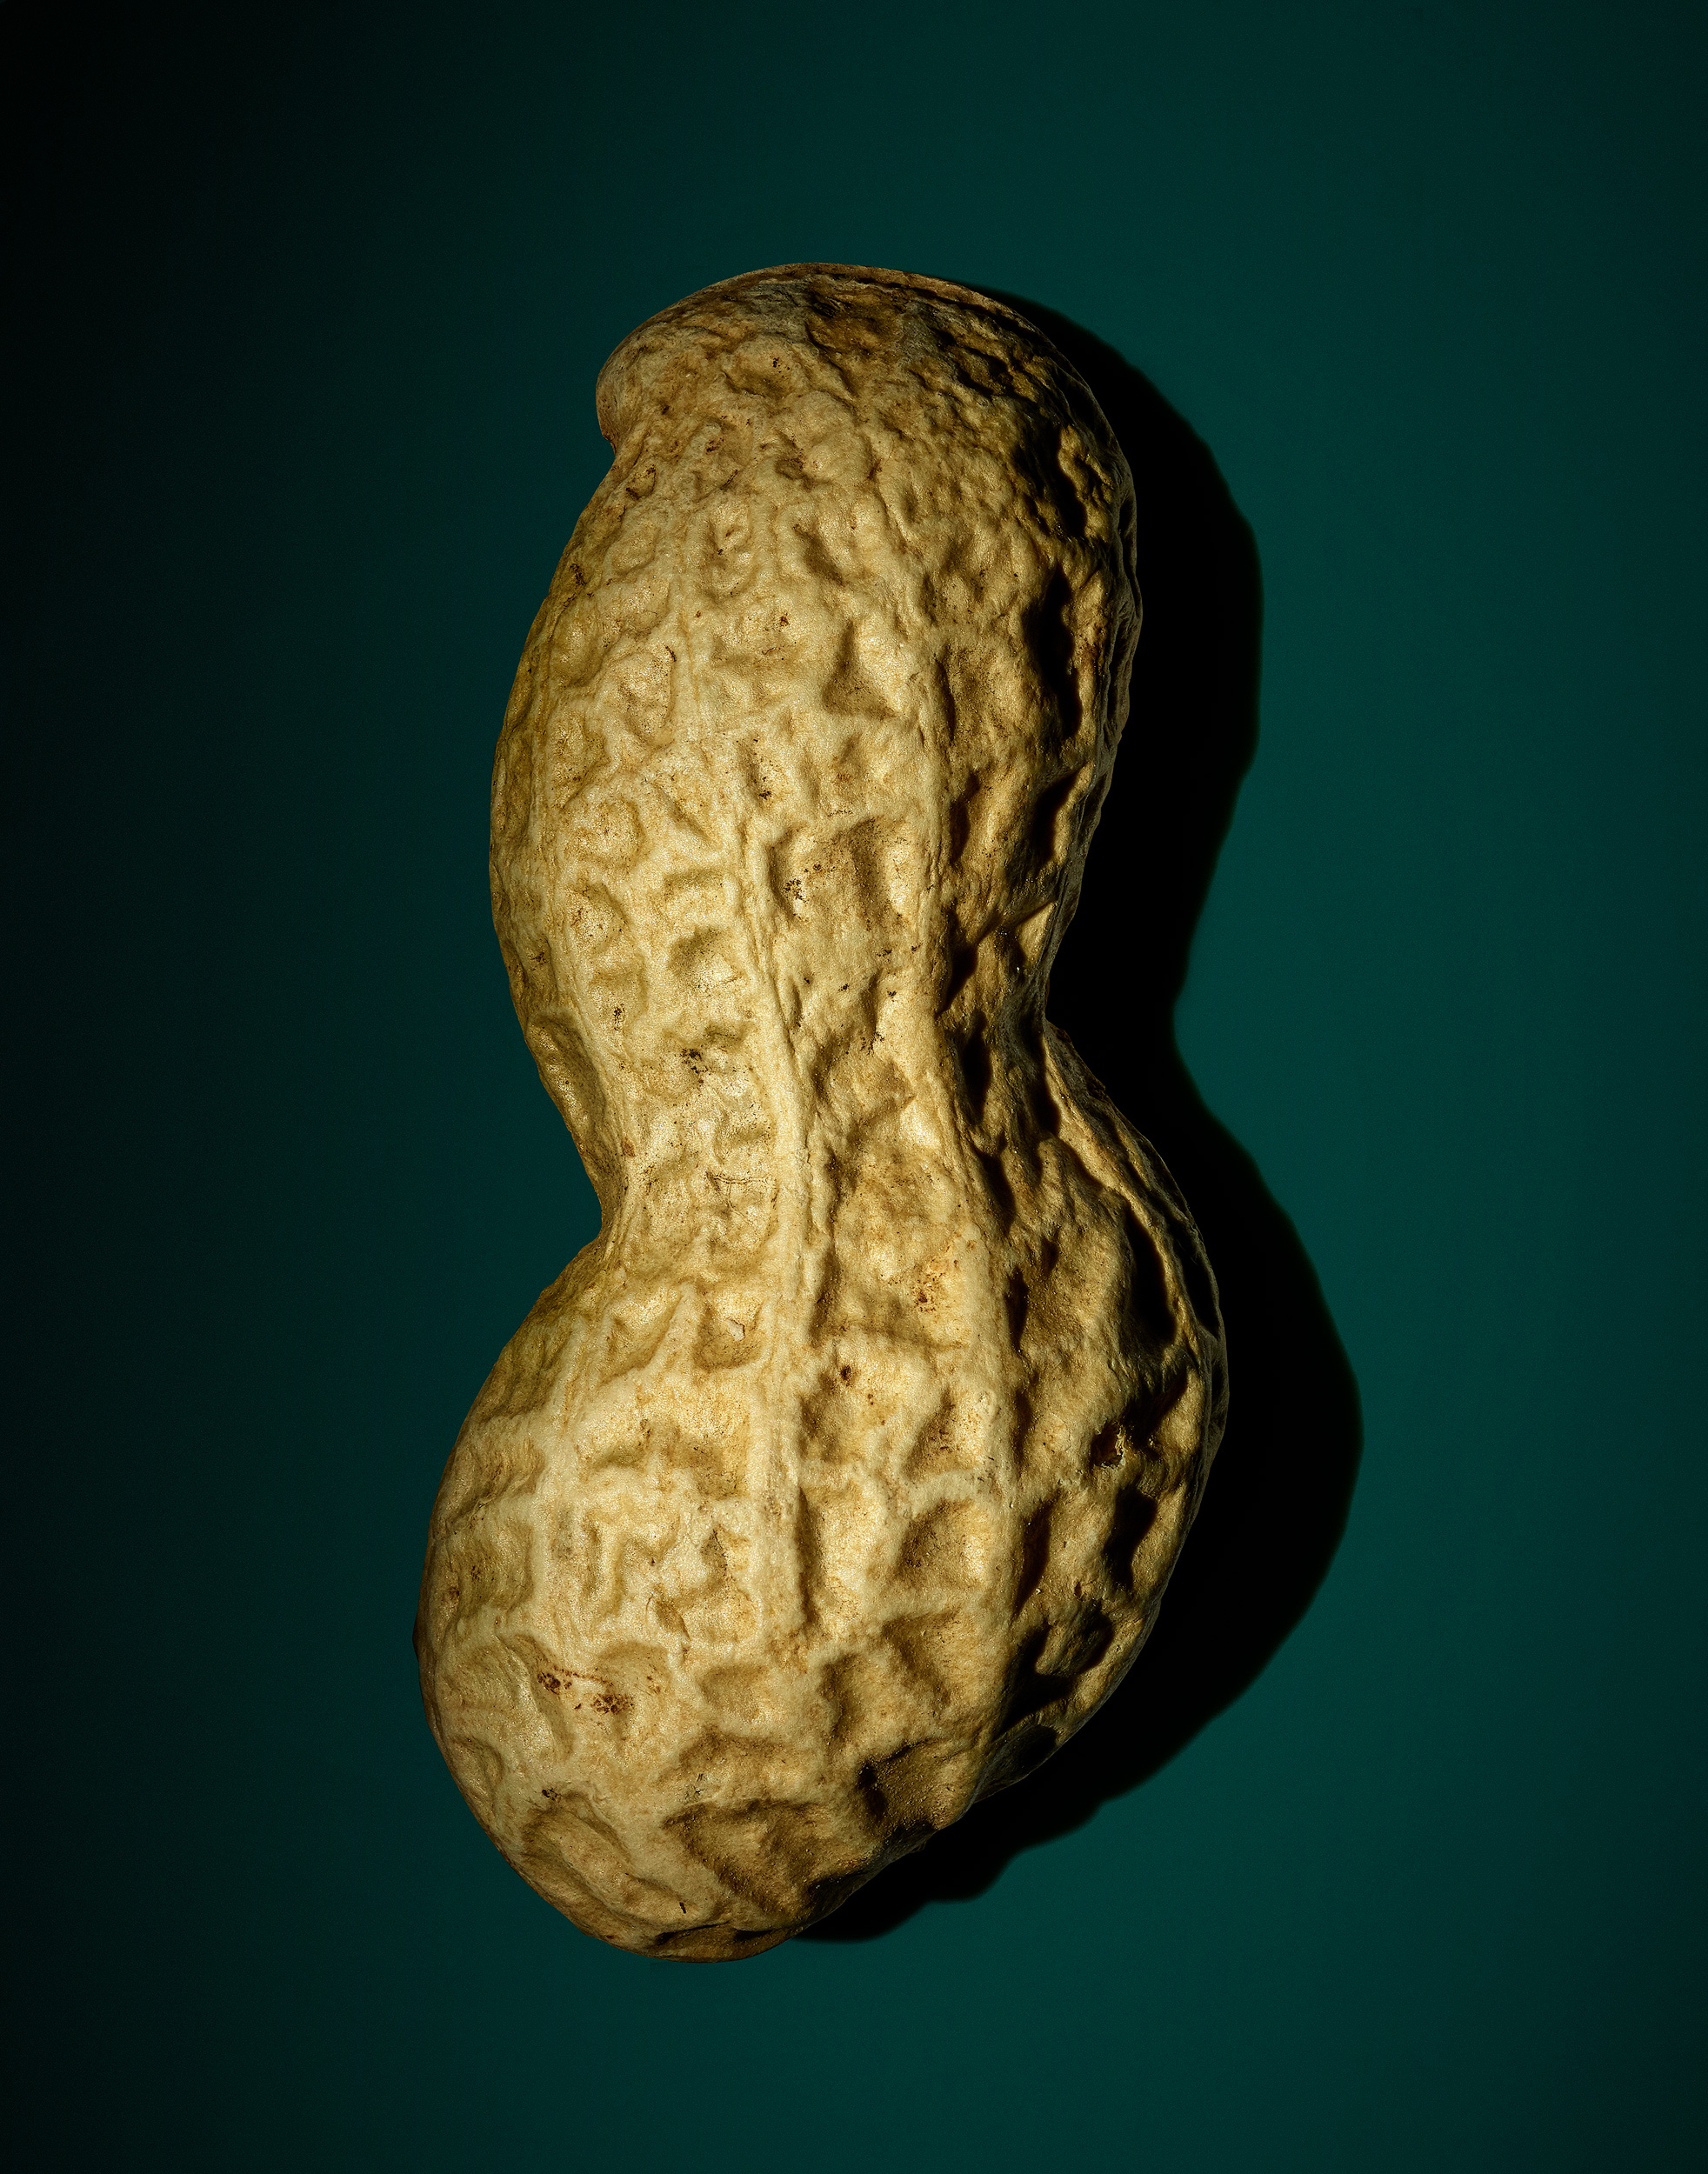 peanut01_v2-copy.jpg